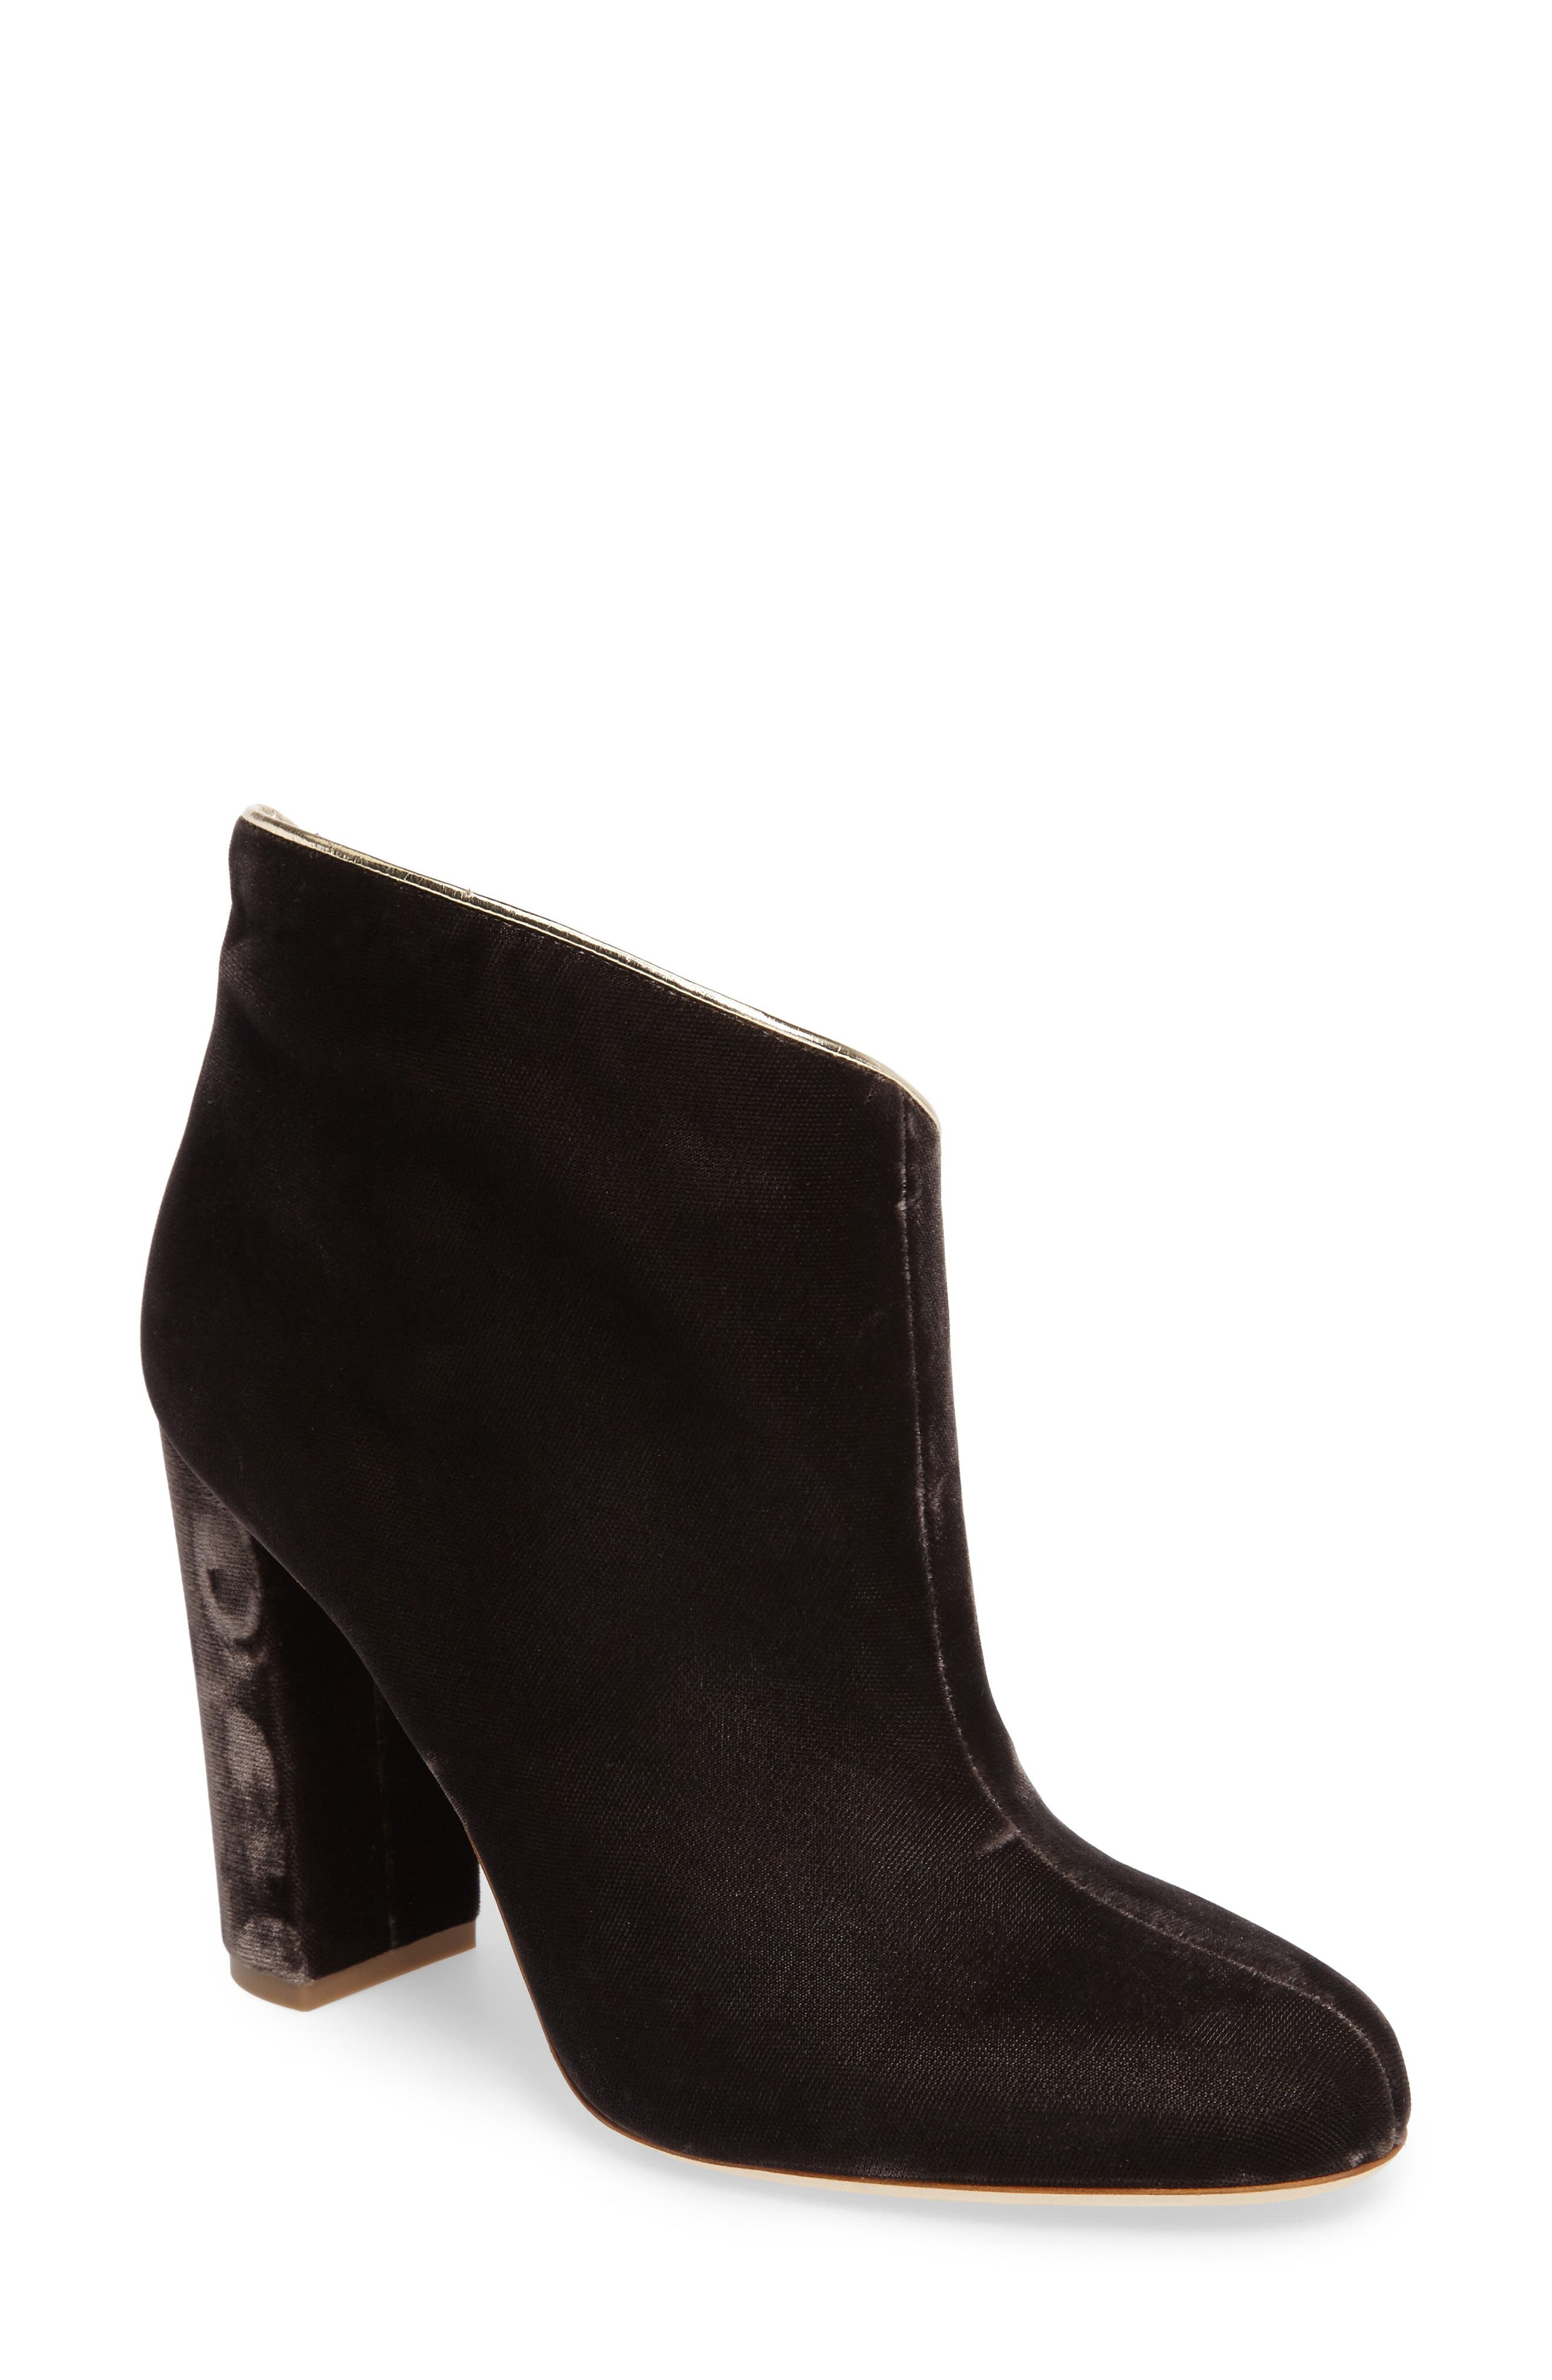 Malone Souliers Eula Bootie,                         Main,                         color, 020